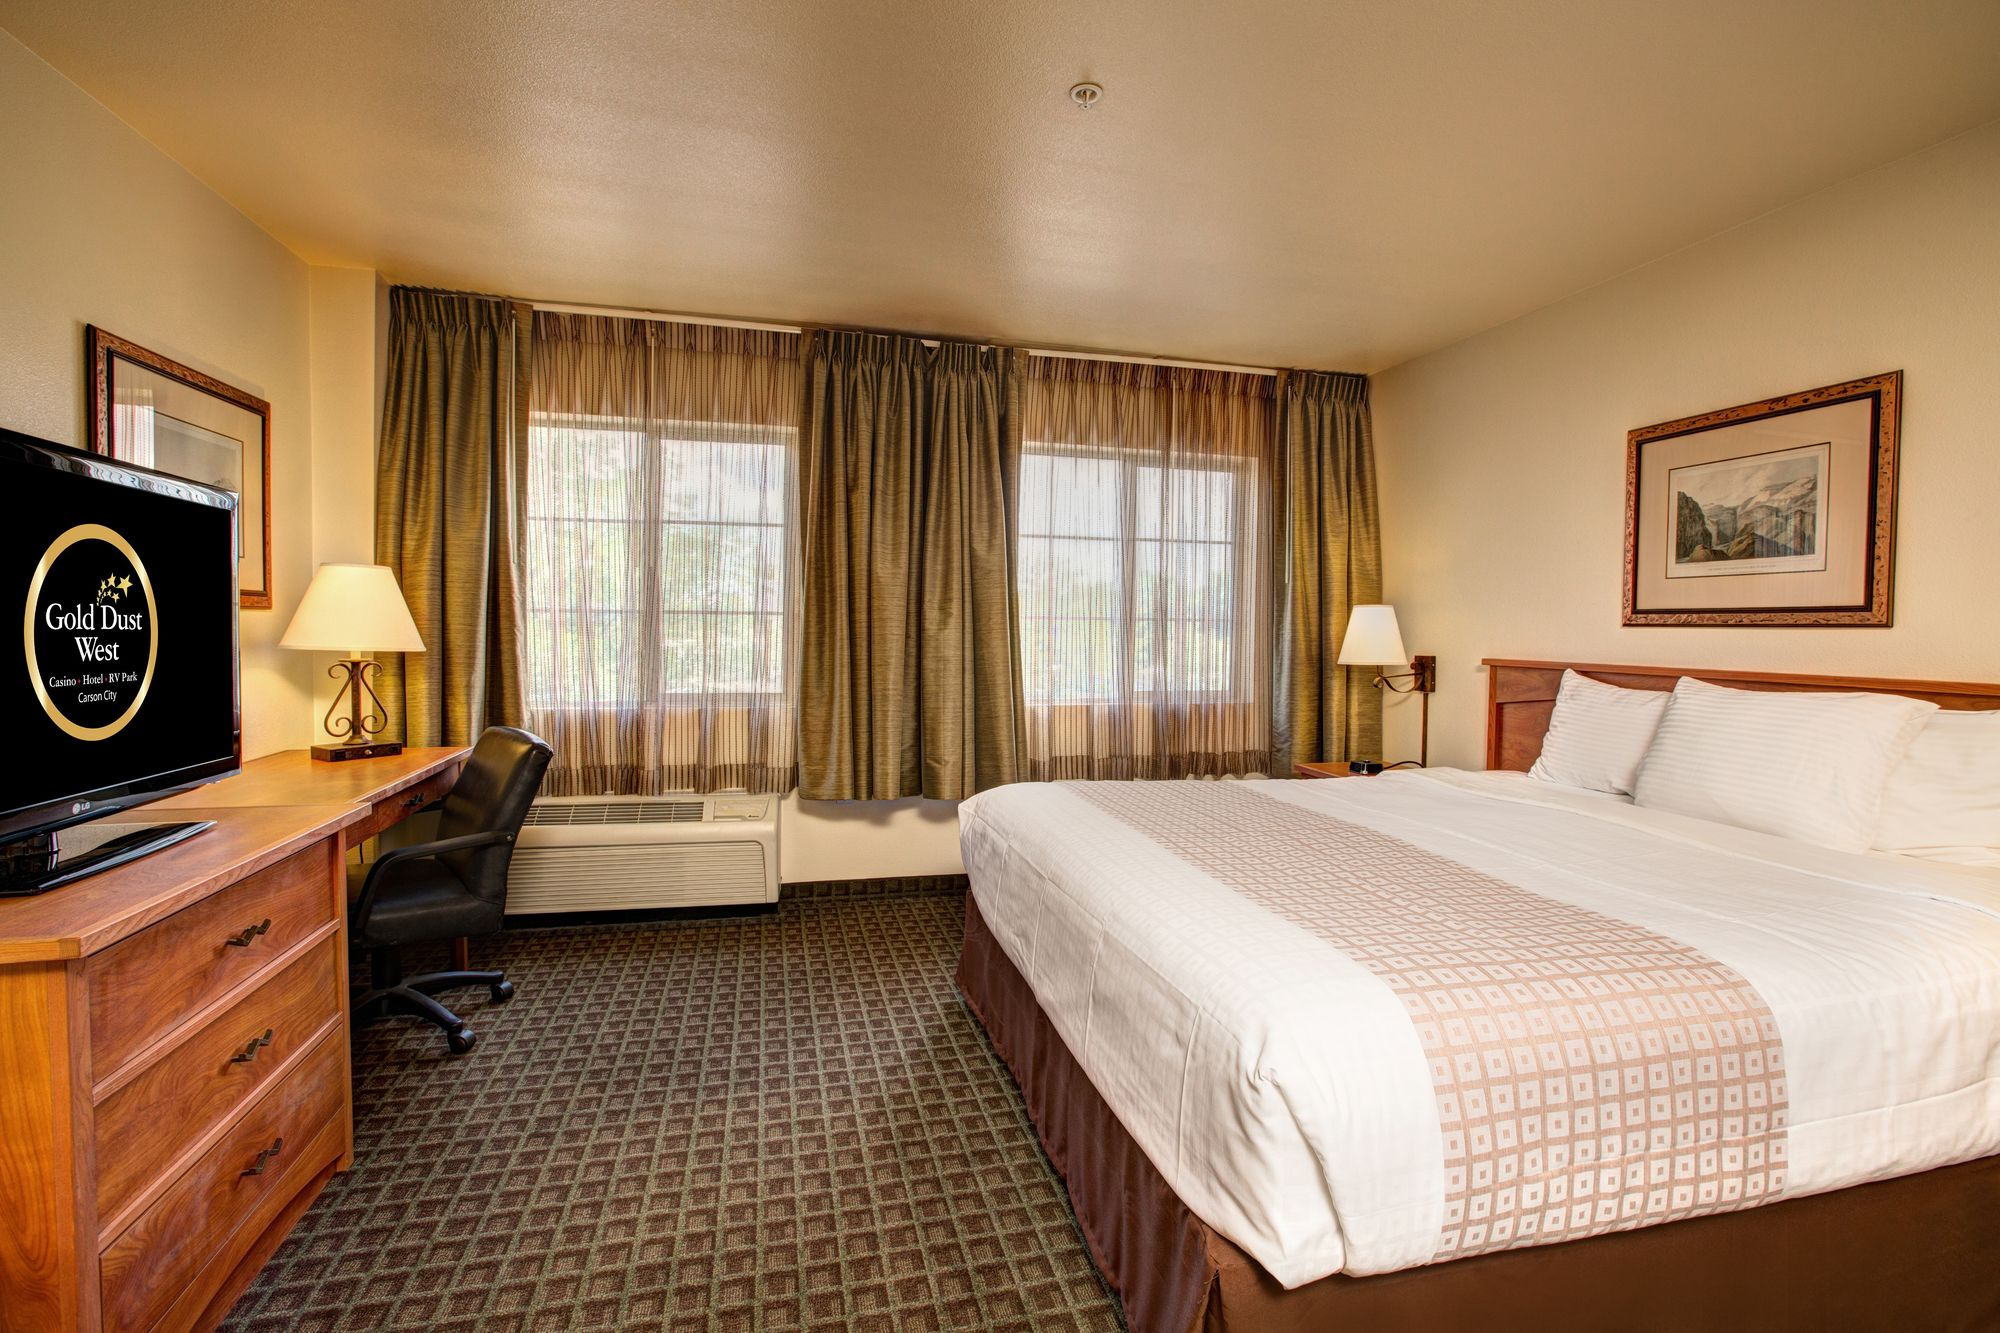 Carson City Hotel Coupons for Carson City, Nevada - FreeHotelCoupons.com